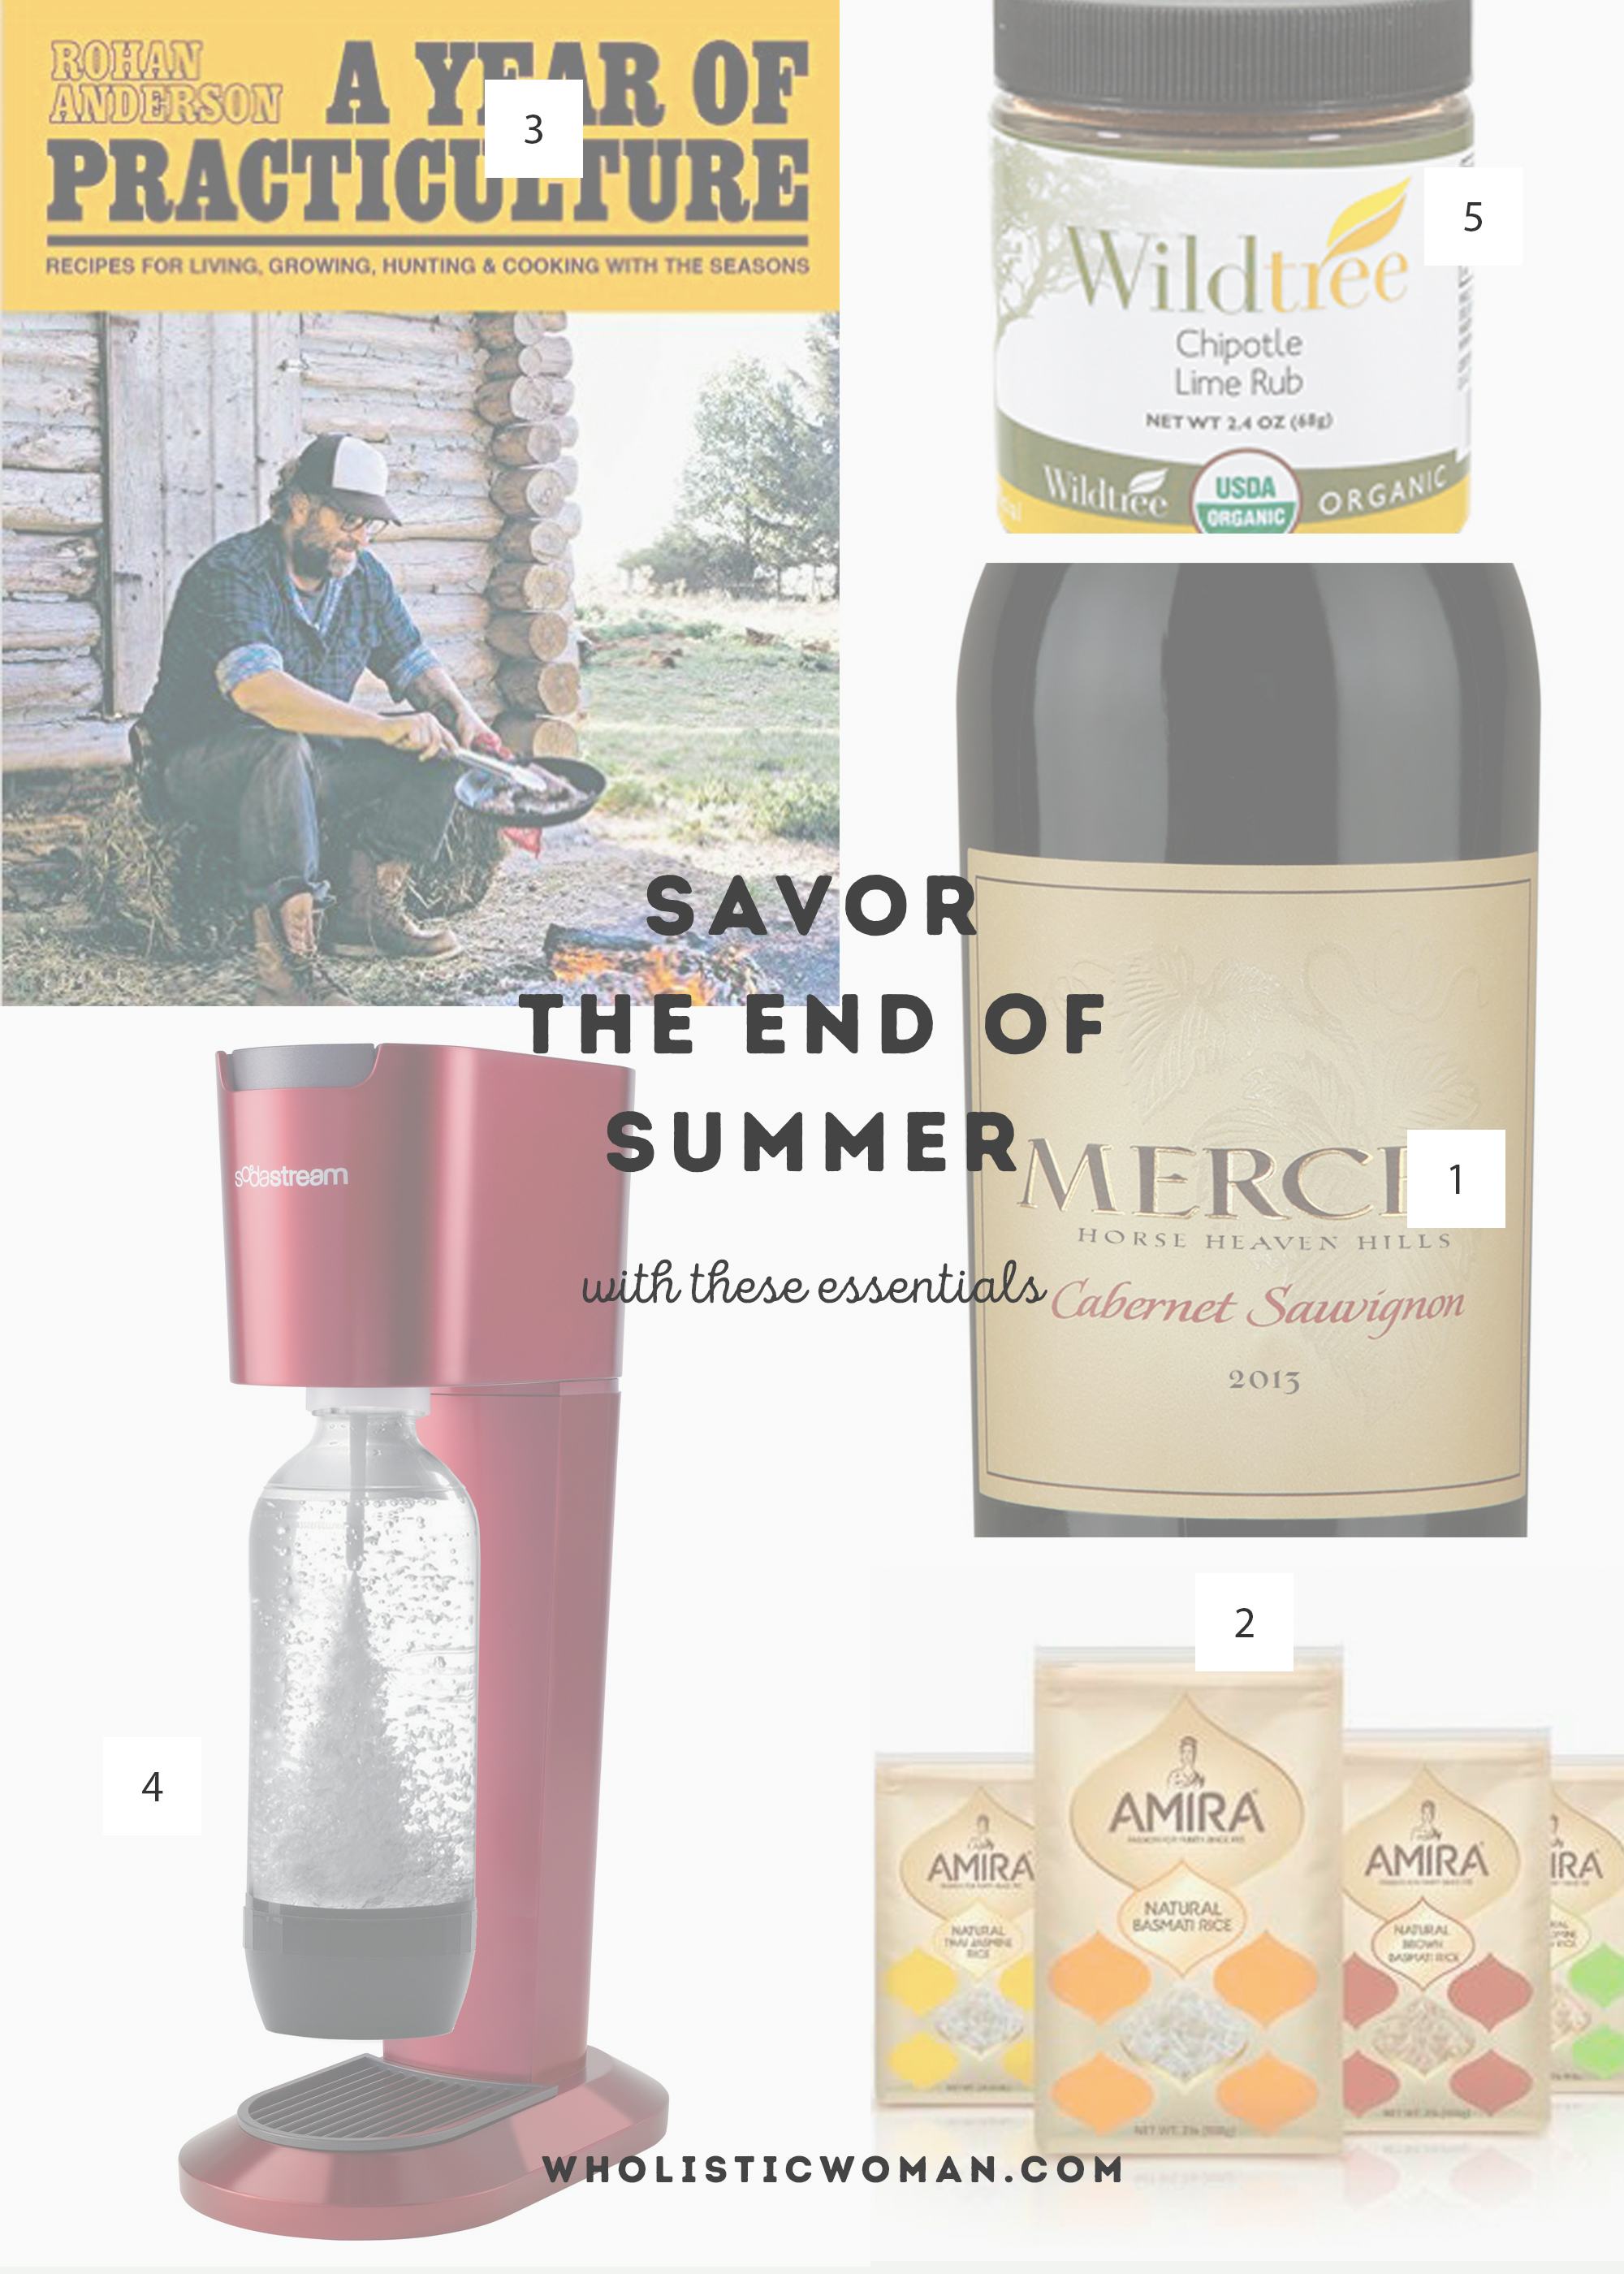 Savor the End of Summer with these Essentials